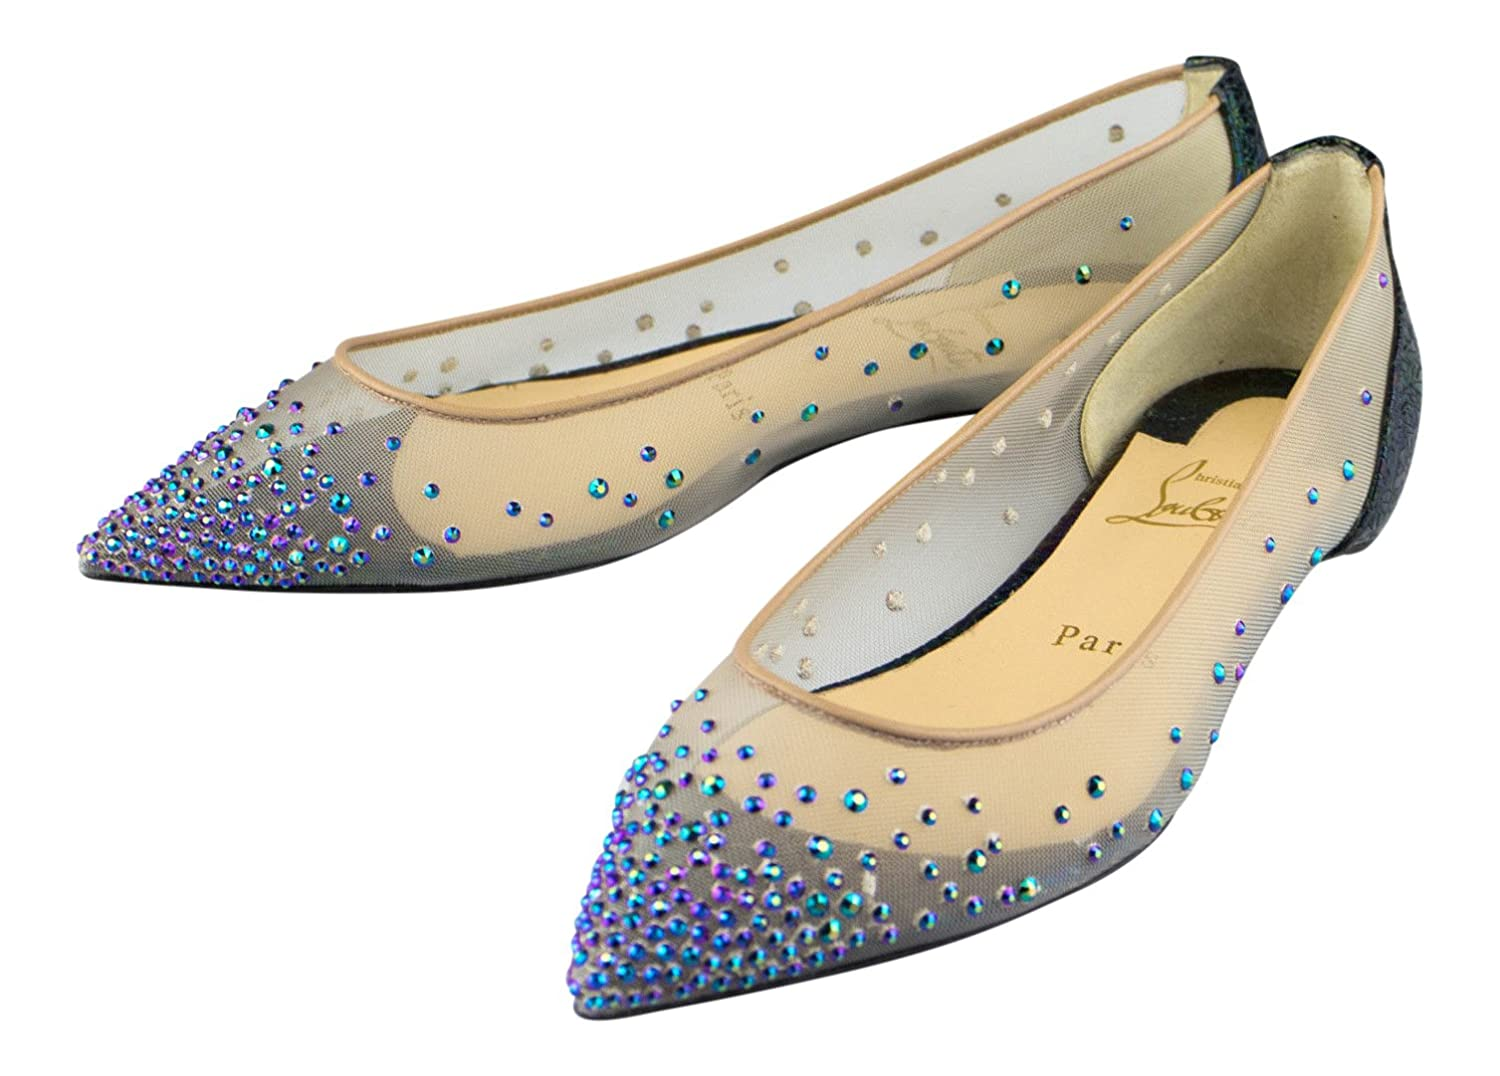 183be2ad20a Christian Louboutin Follies Strass Embellished Flats Shoes 6.5 36.5   Amazon.ca  Sports   Outdoors